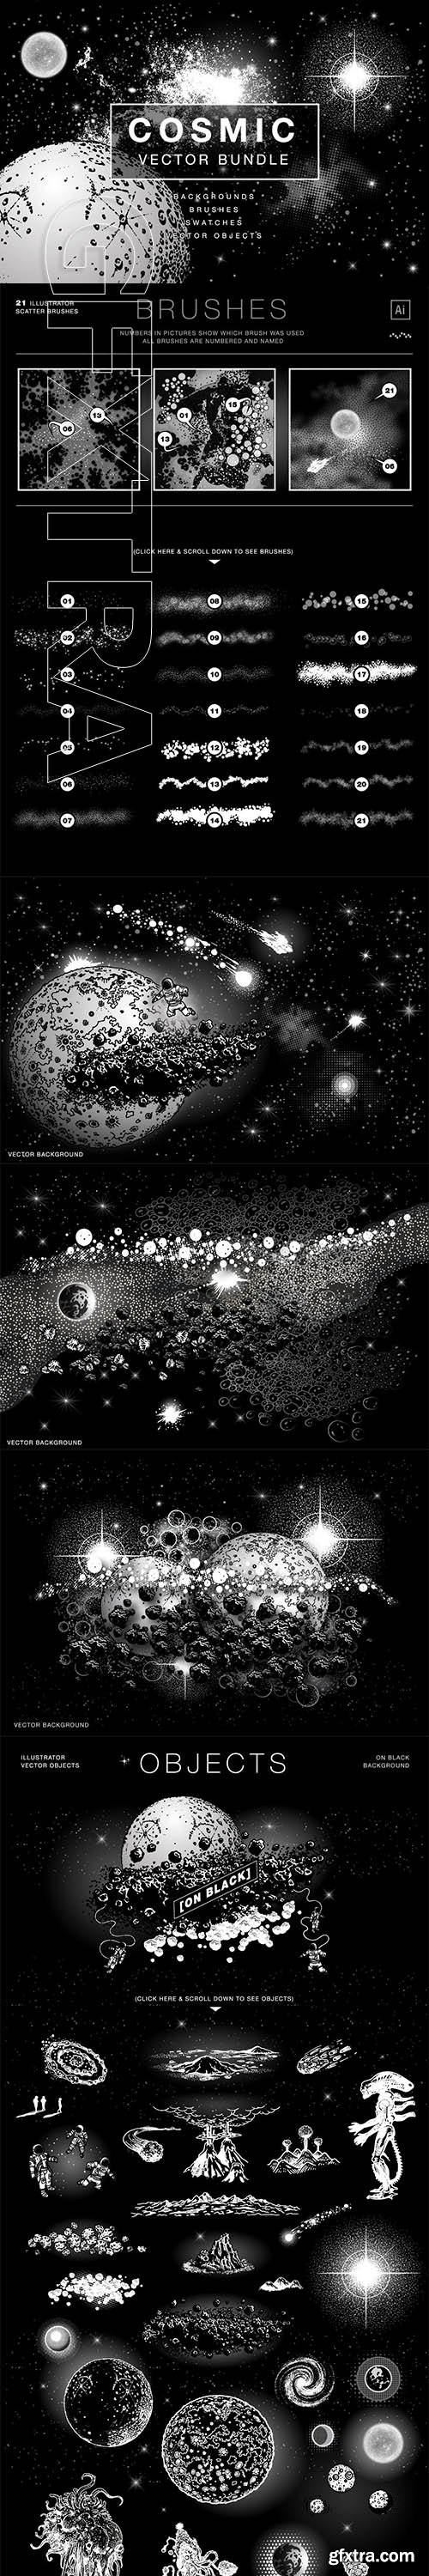 CreativeMarket - Cosmic Vector Bundle 3576086